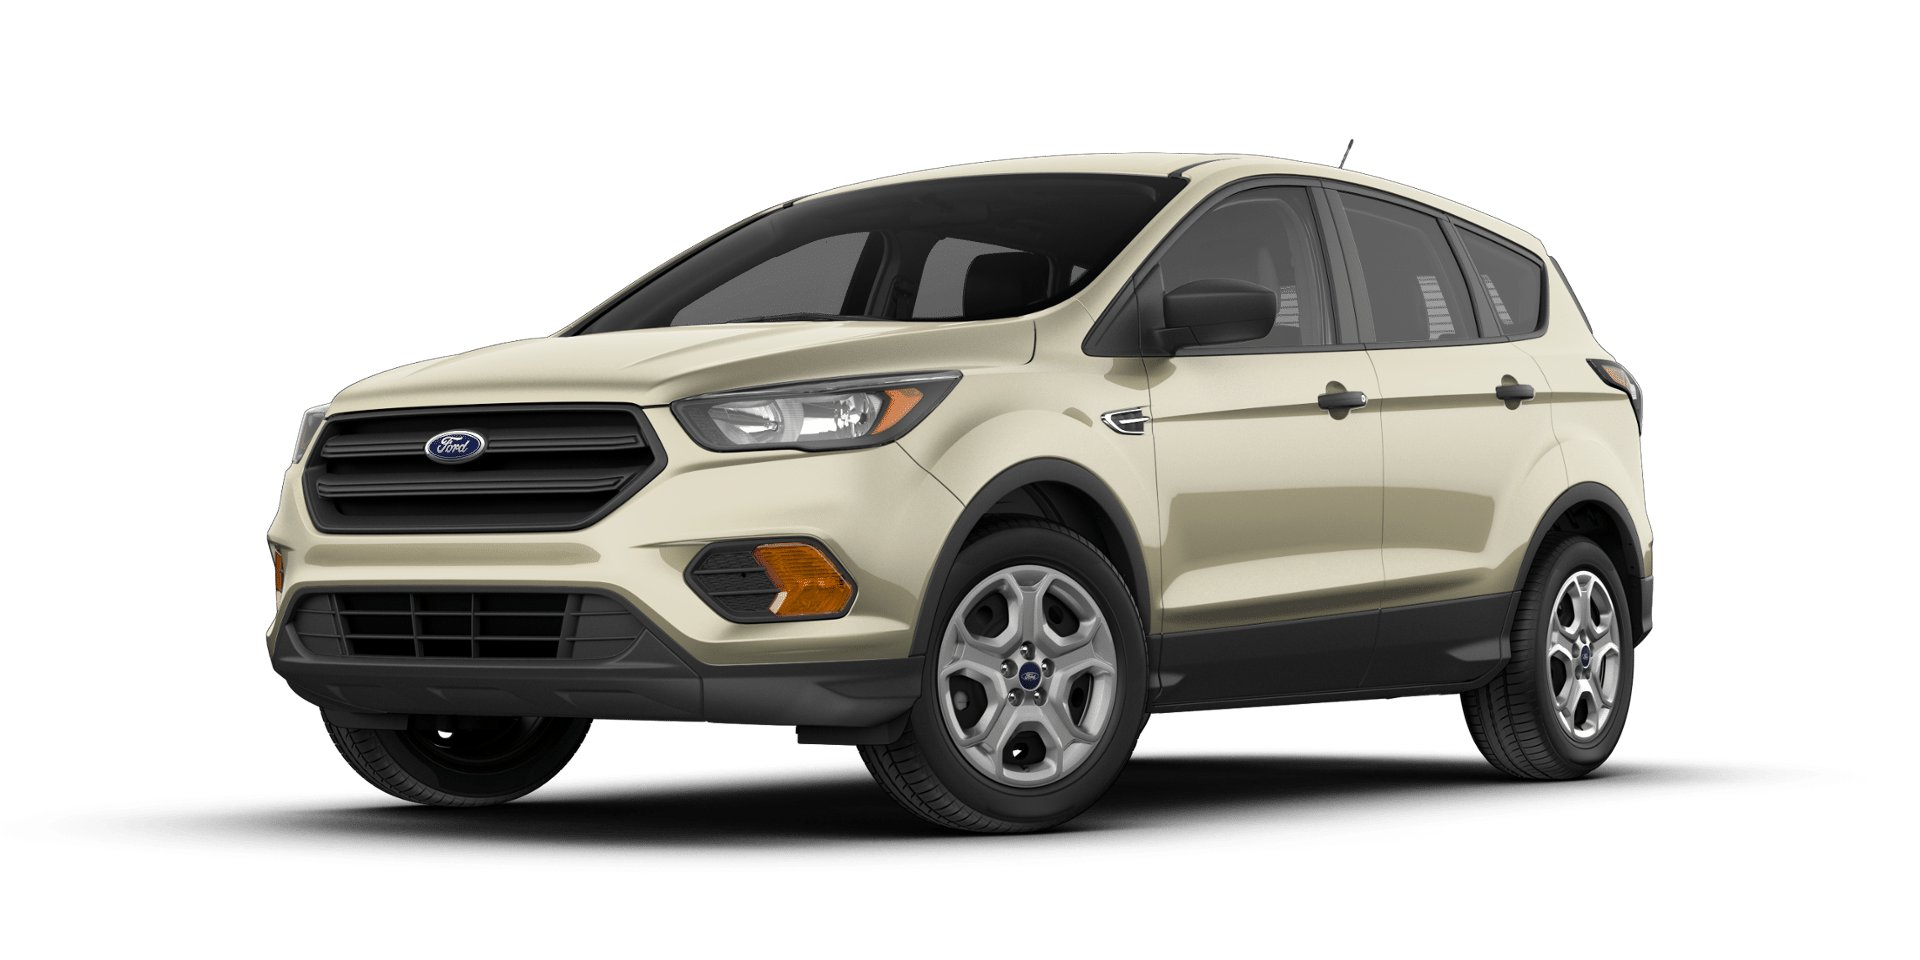 2018 Ford Escape White Gold Side View